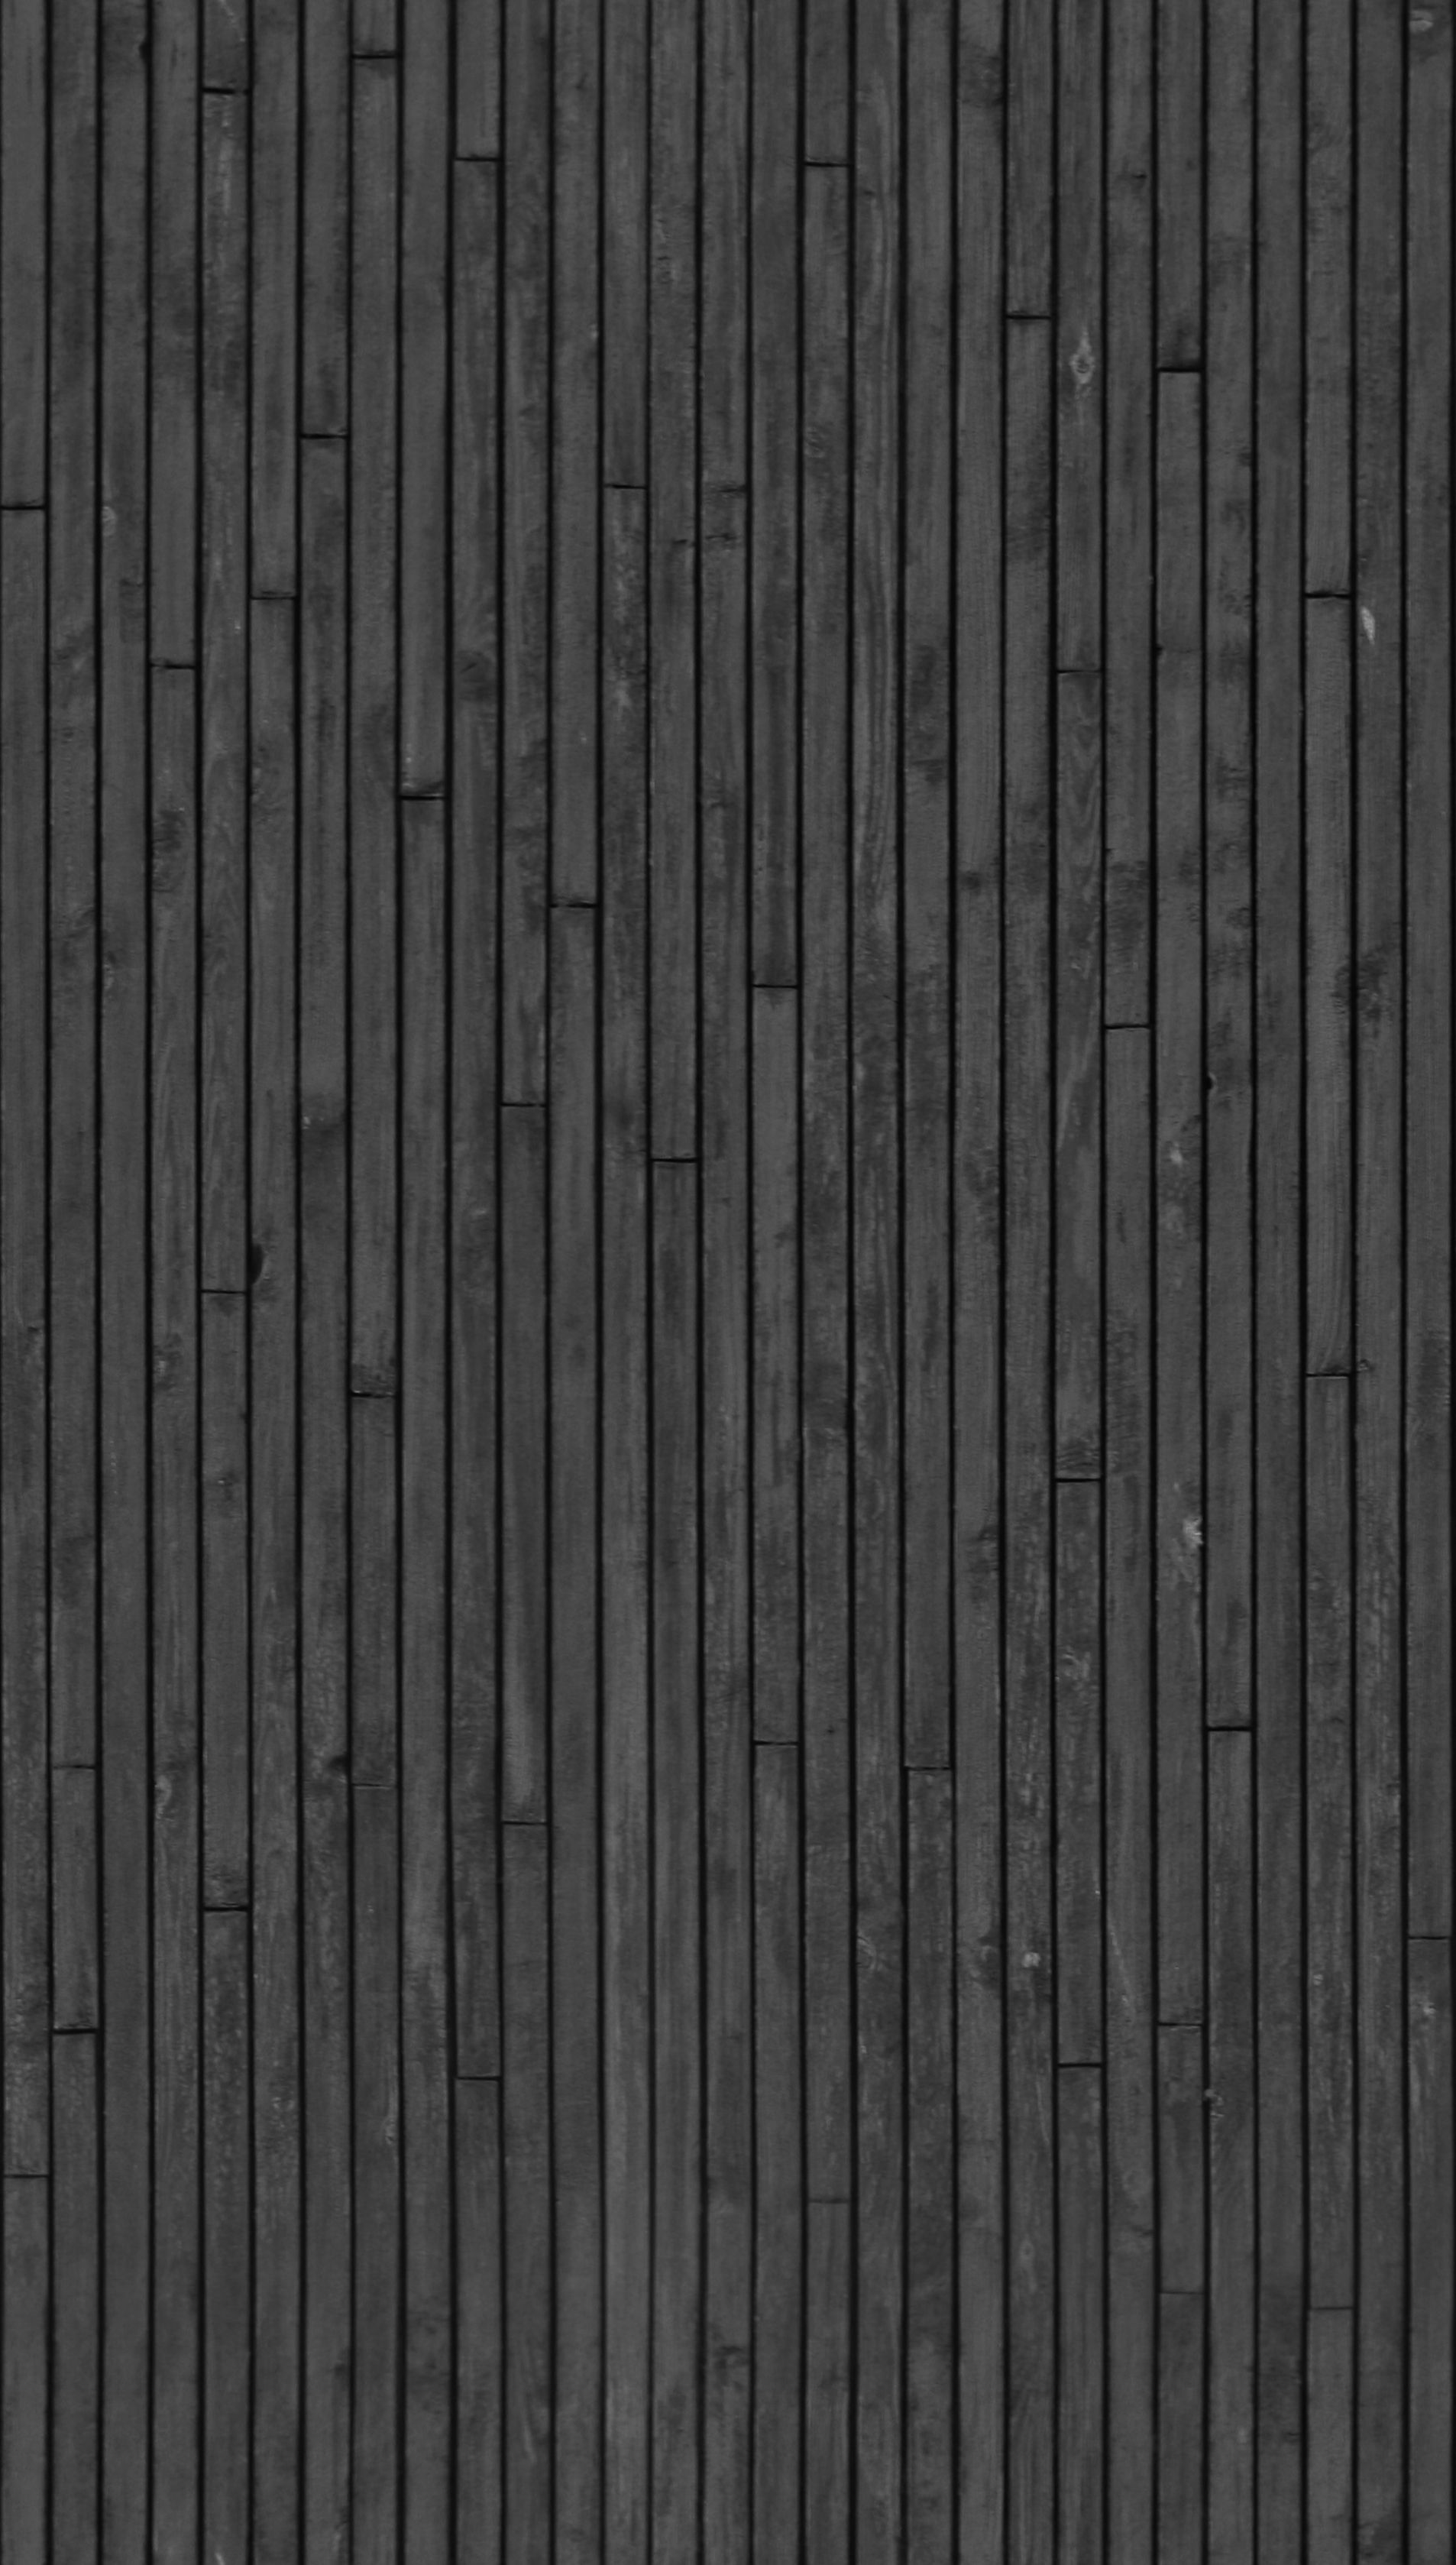 Charred Black Timber Texture 贴图区 In 2019 Black Wood